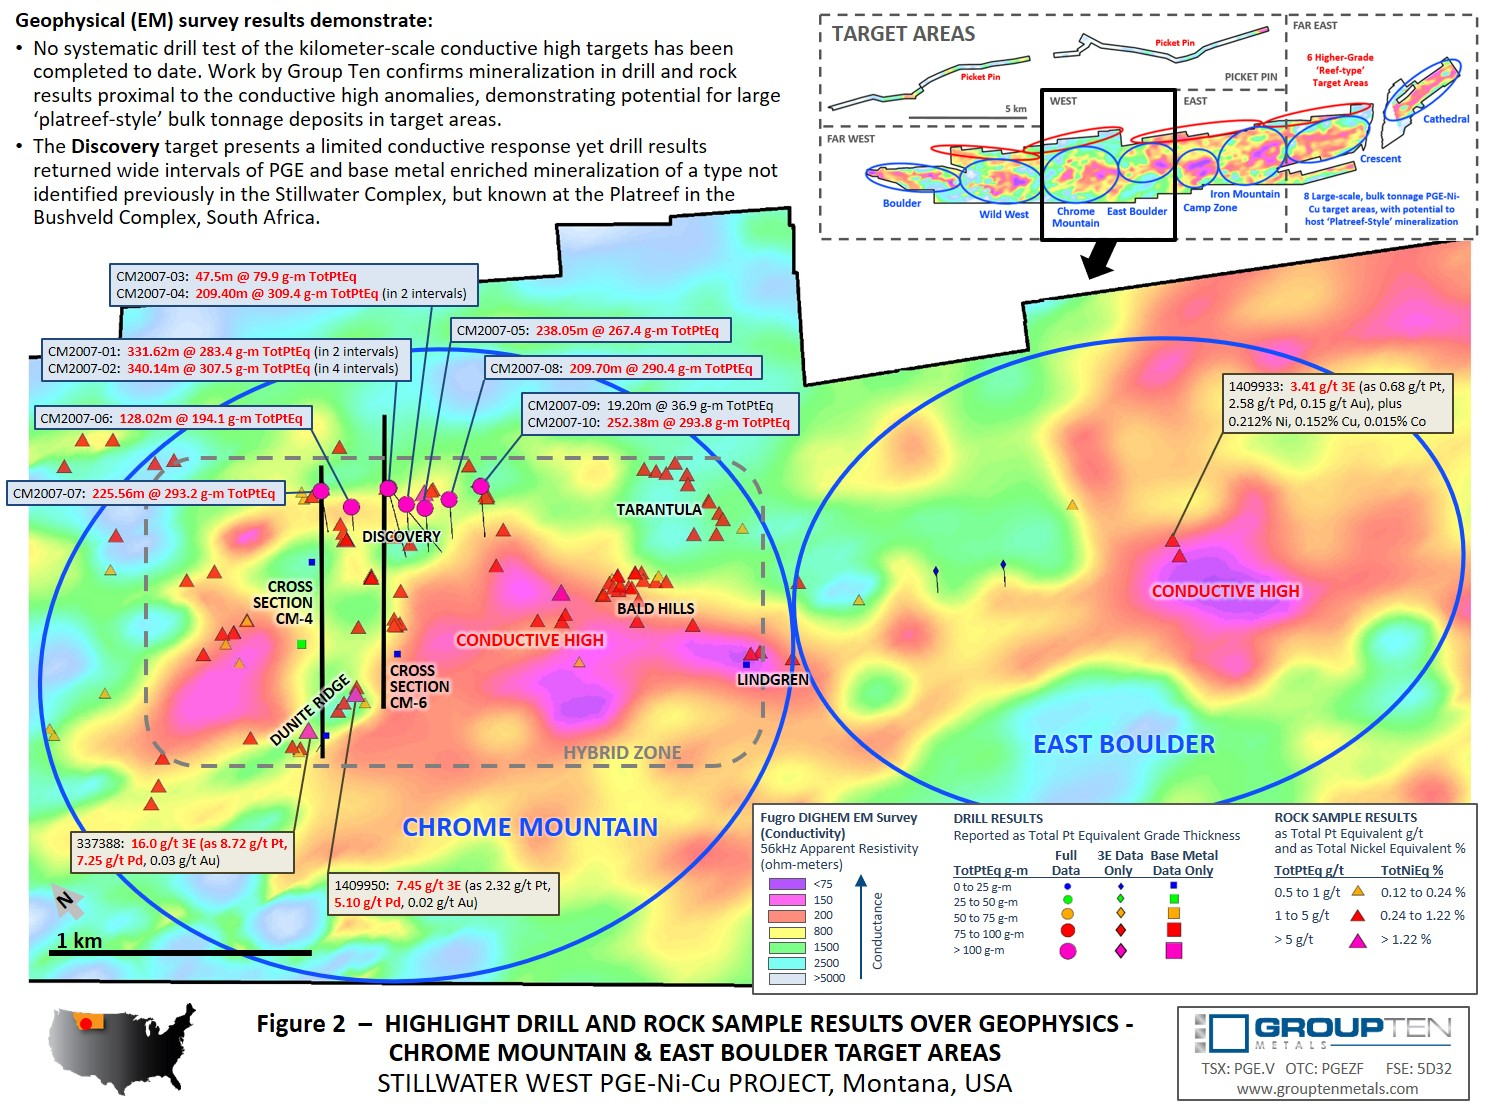 Figure 2  –  Highlight Drill and Rock Sample Results Over Geophysics - Chrome Mountain & East Boulder Target Areas